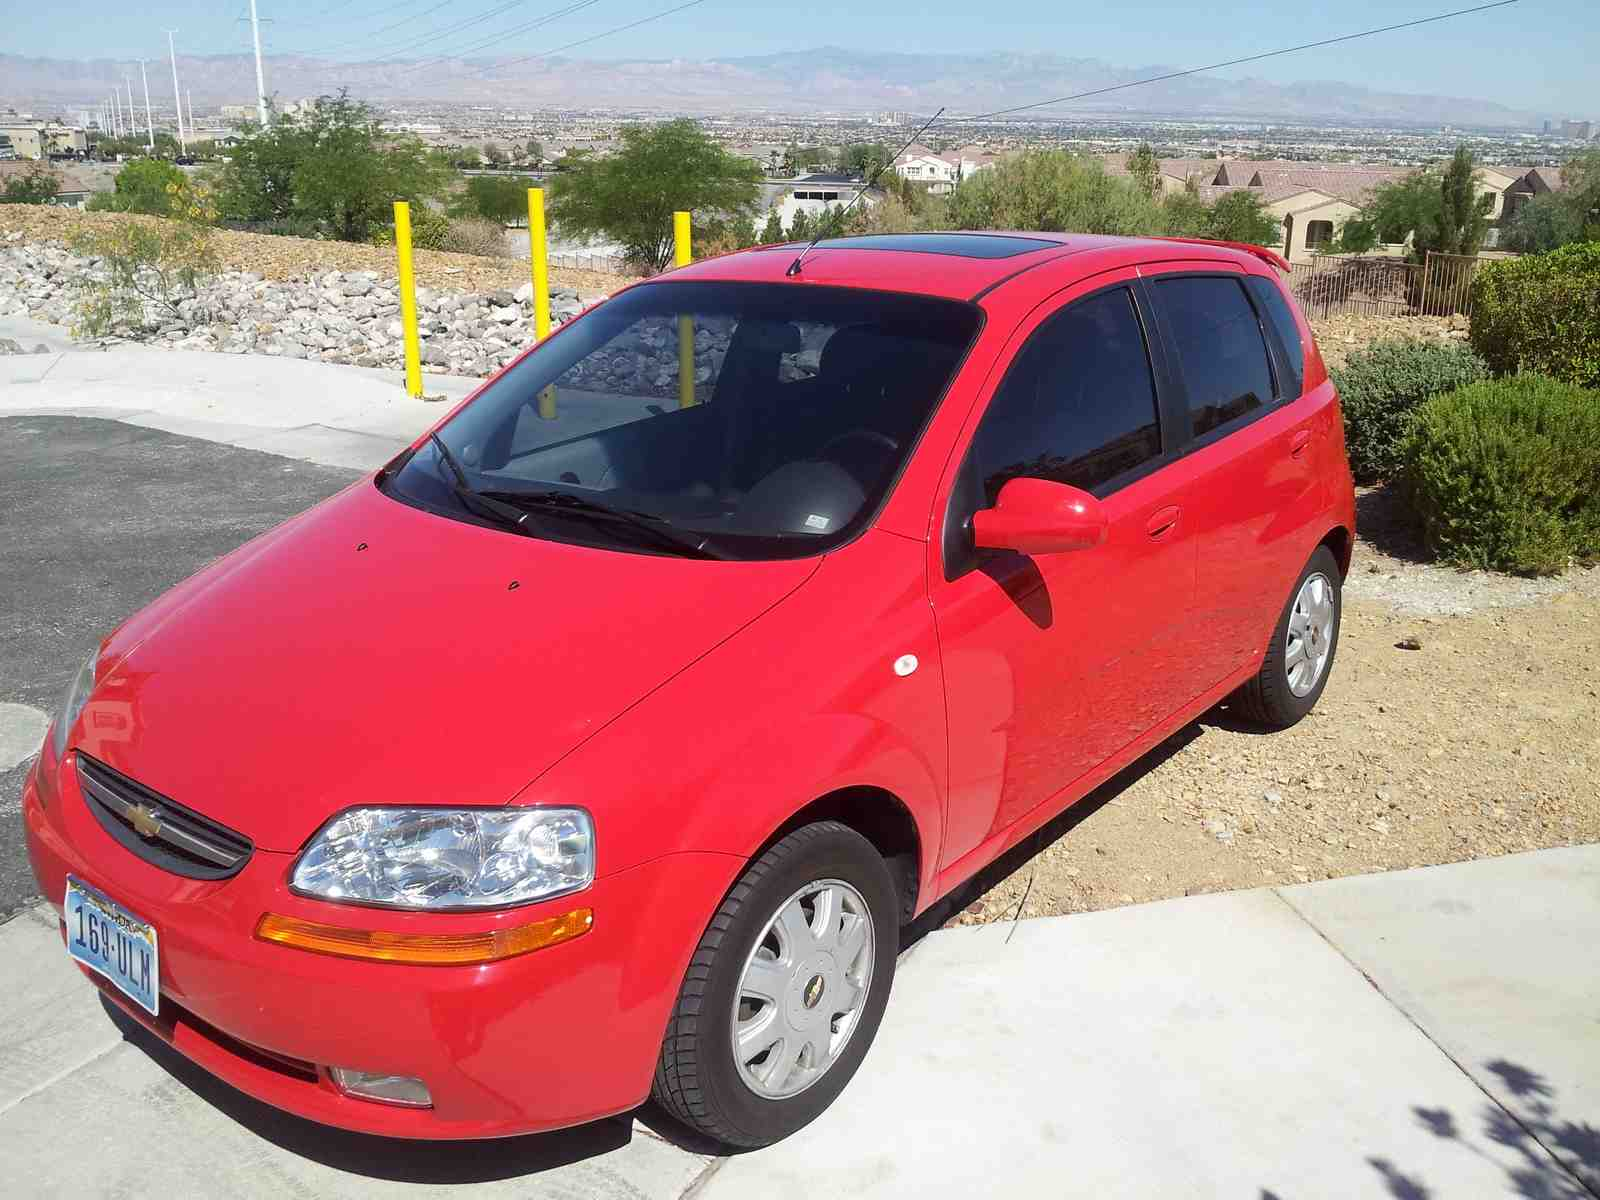 2004 2010 chevrolet aveo workshop repair   service manual  8 275 pages  printable  bookmarked 2008 Aveo Car 2012 Aveo Car